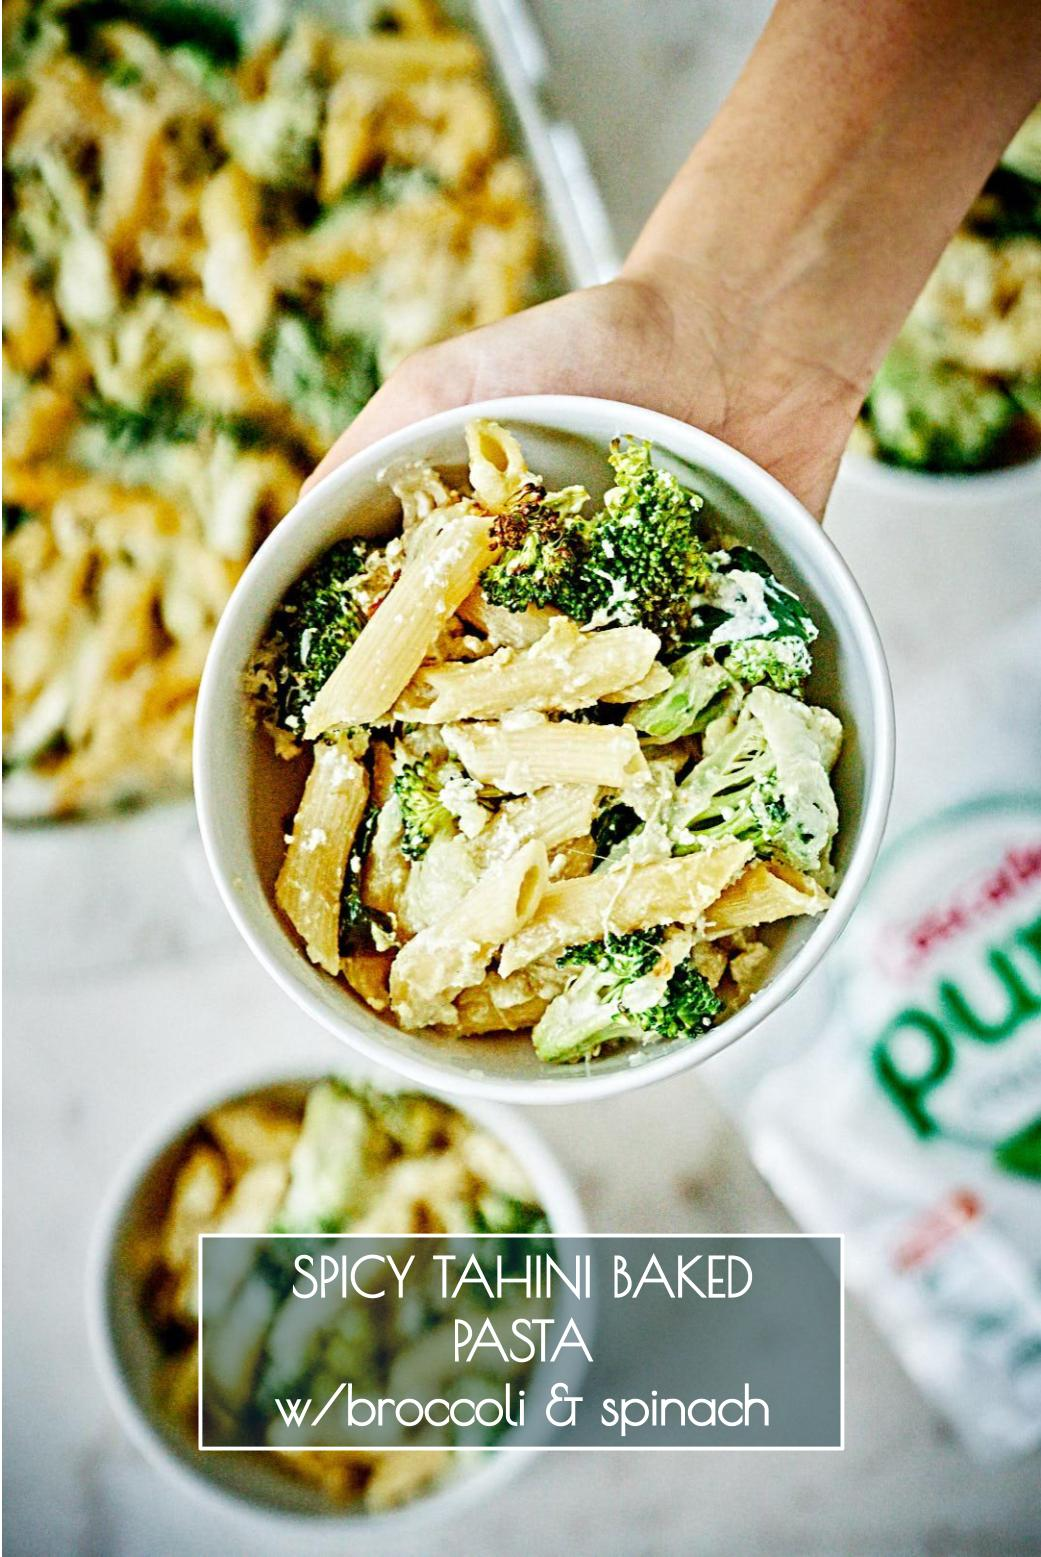 Spicy tahini baked penne with broccoli & spinach will quickly become your new favorite prep-ahead weeknight dinner. I\'m partnering with new Cascade pure essentials to show you you no longer need to be afraid of cleaning up after baked pastas! Available at Kroger stores! #PureEssentials #ad